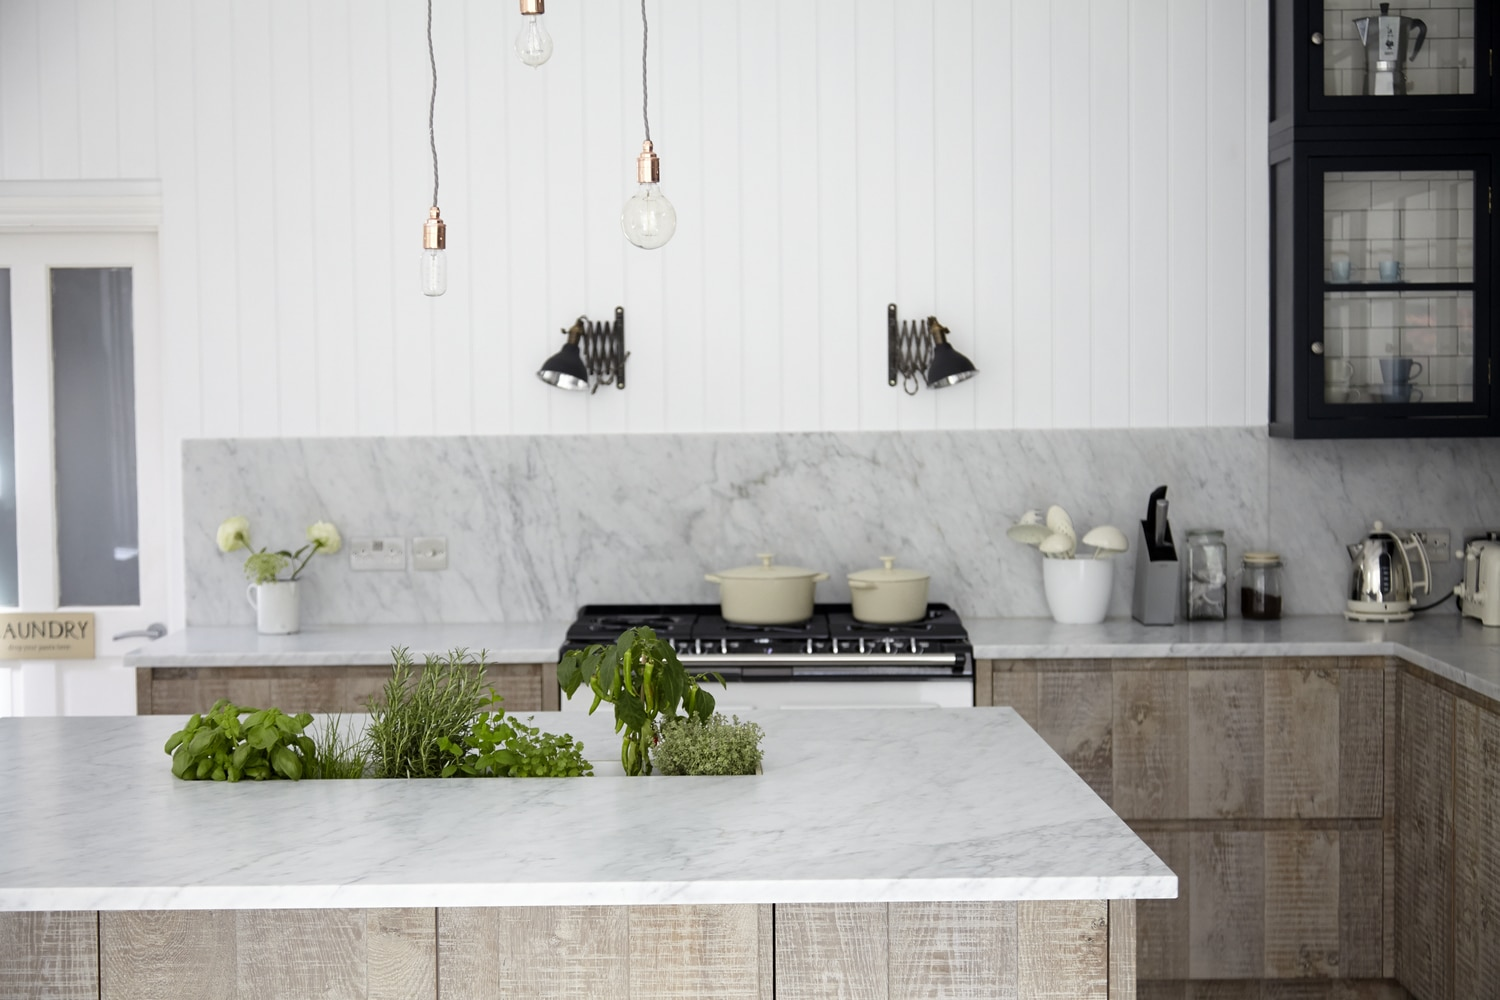 country-kitchen-lighting-rustic-cabinets-blakes-london